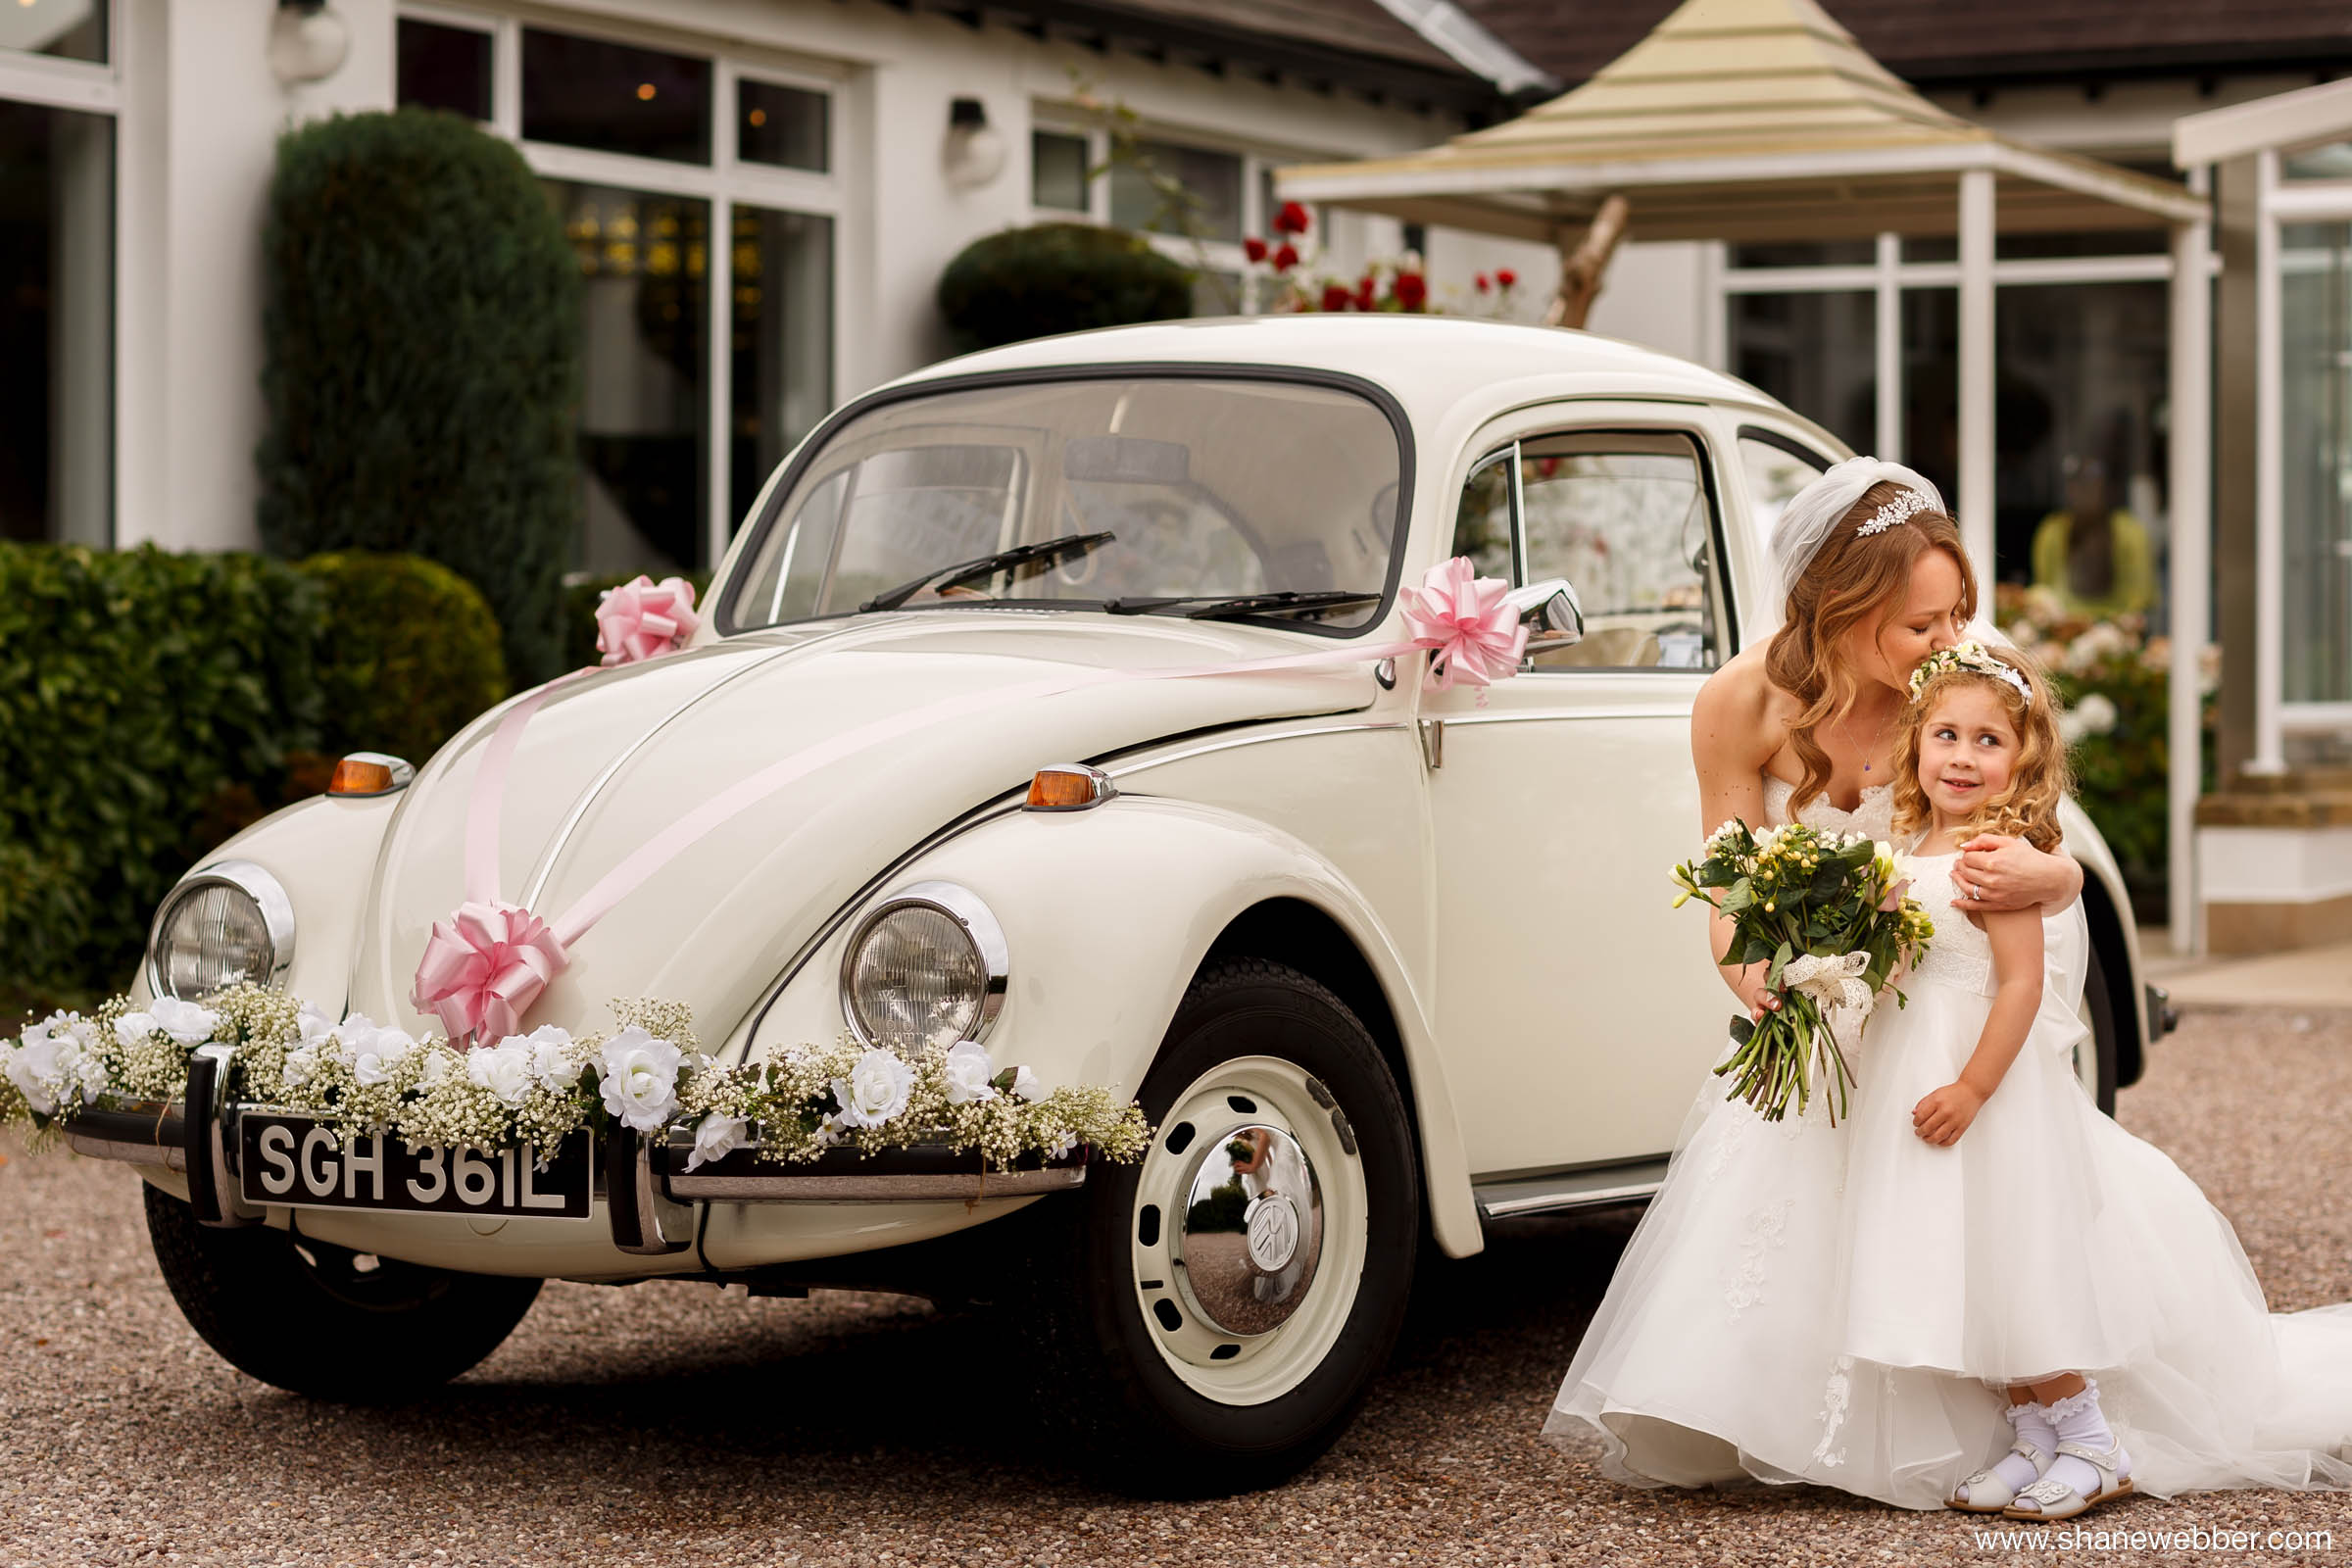 Vintage Volkswagen Beetle wedding car